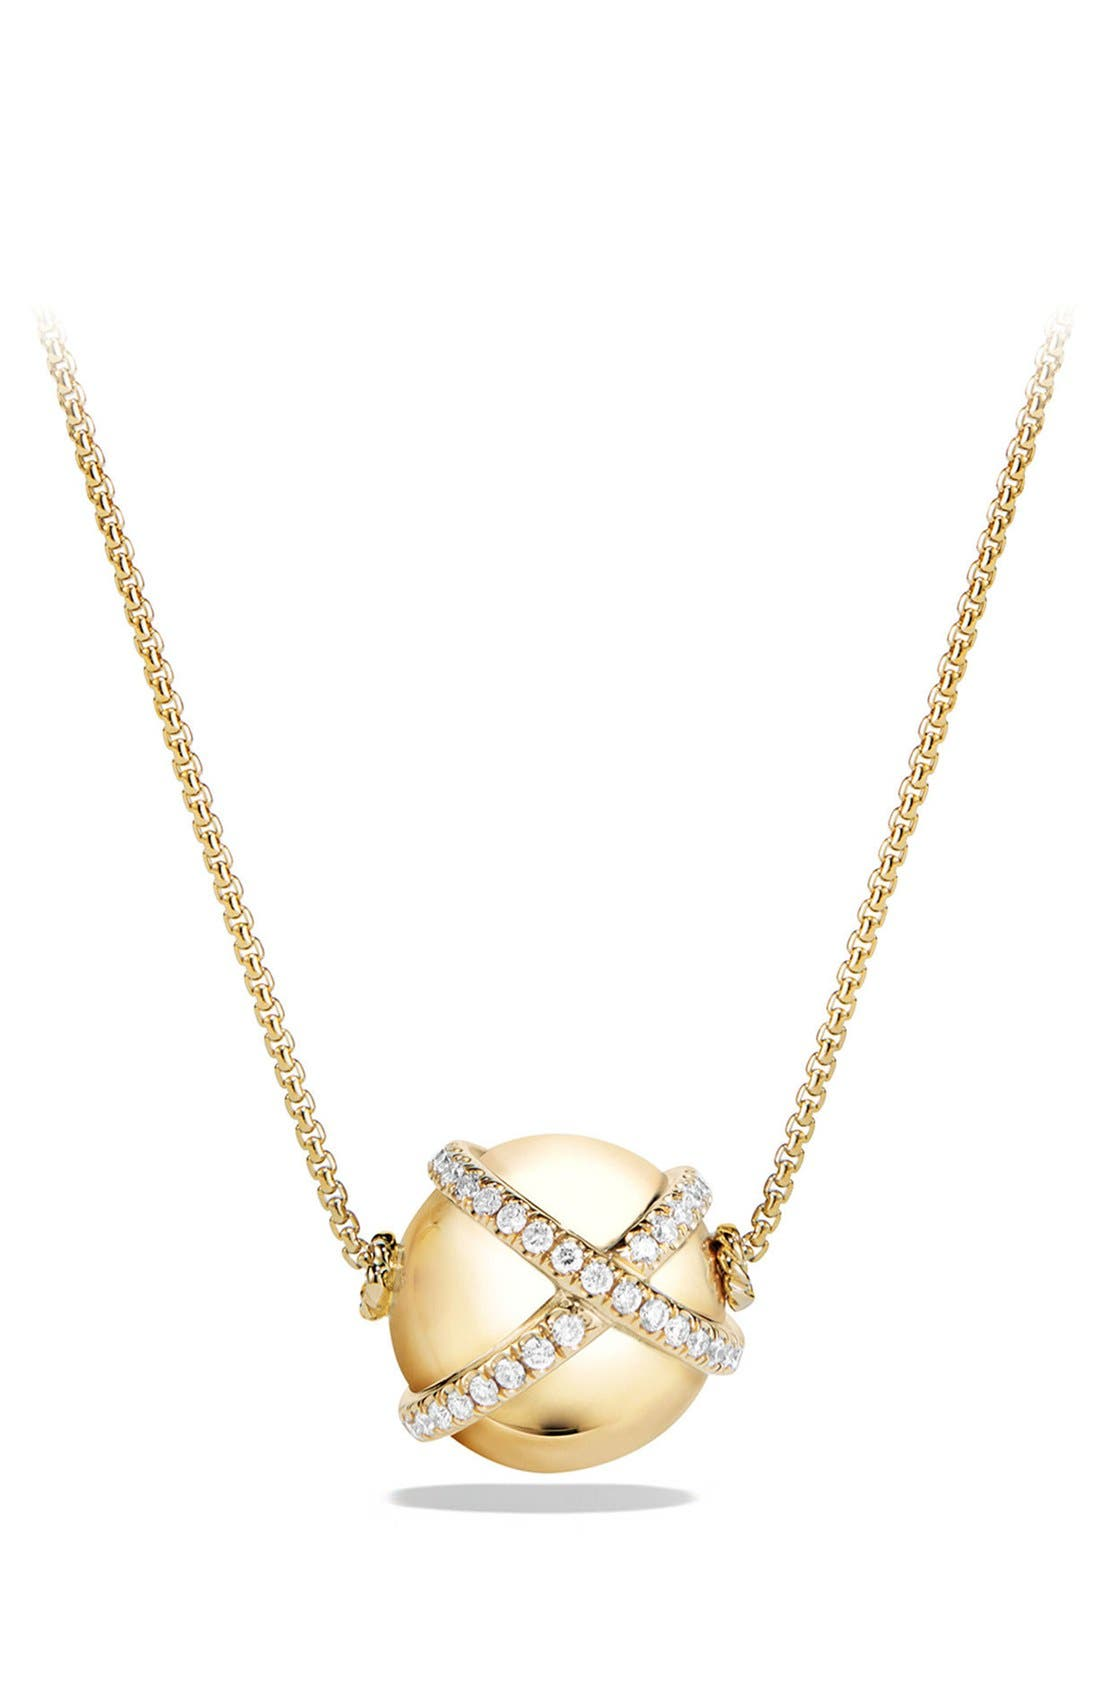 DAVID YURMAN Solari Wrap Pendant Necklace with Pavé Diamonds in 18k Gold